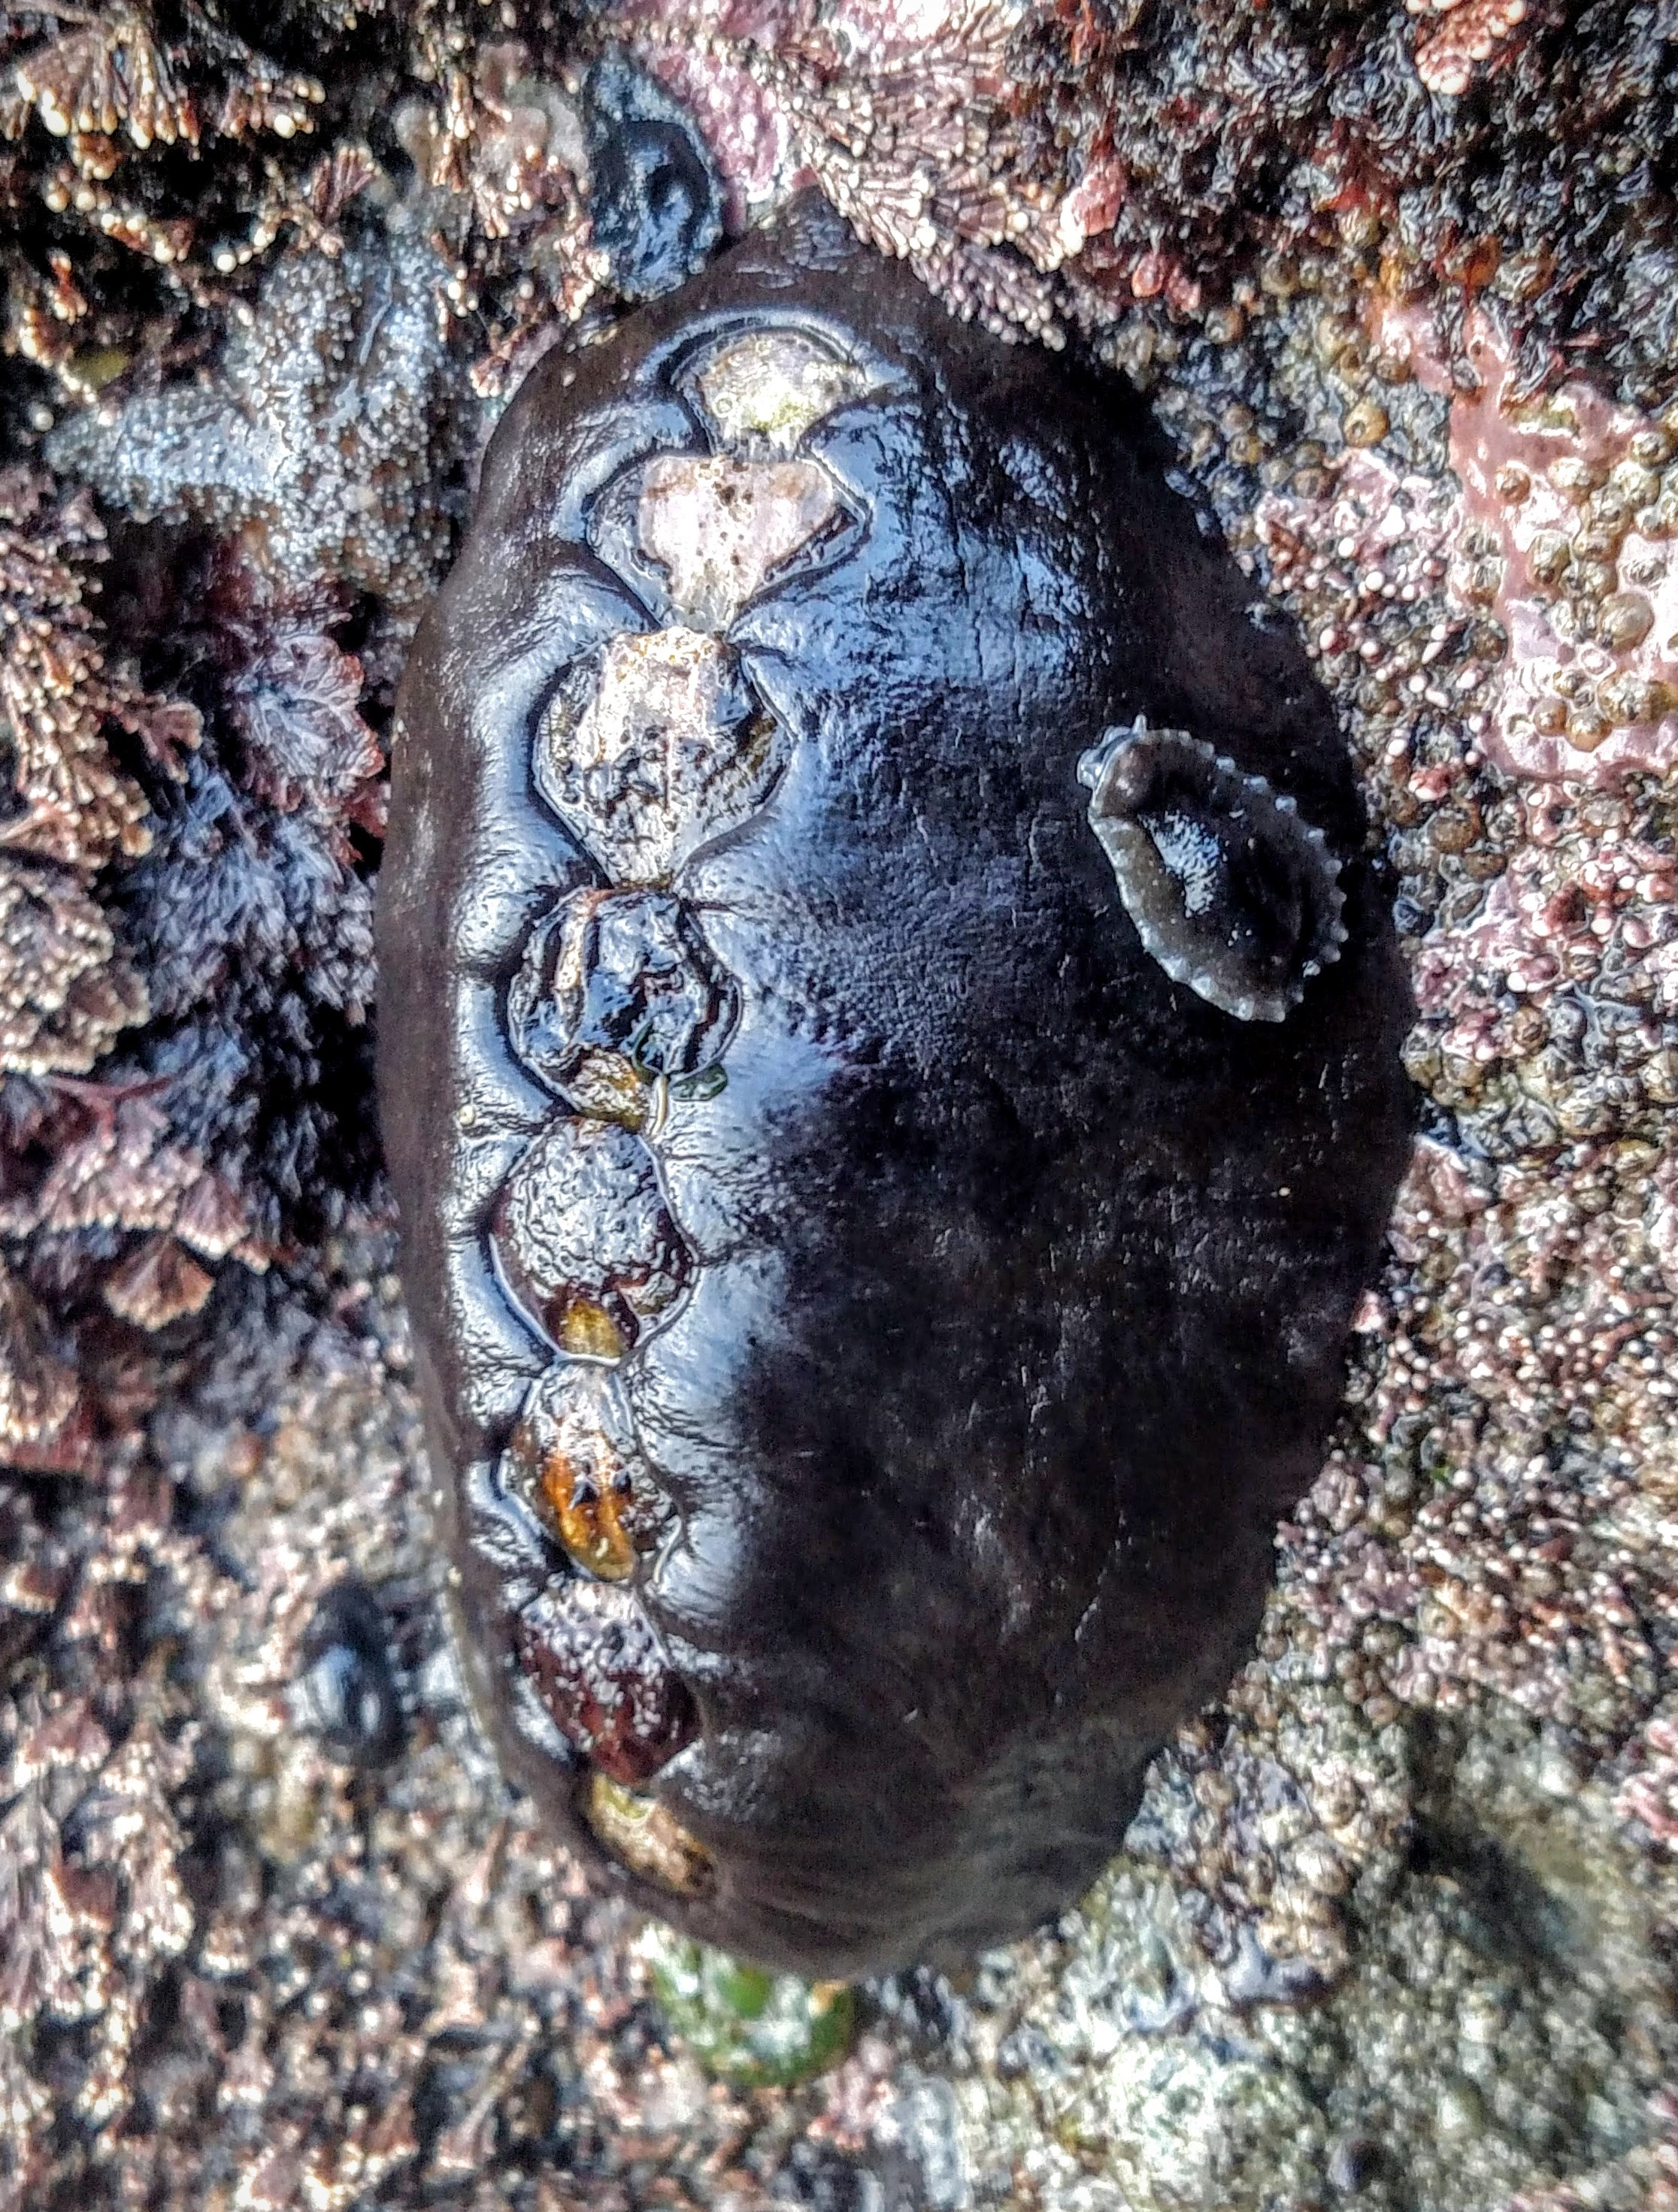 Leather Limpet on Black Katy Chiton